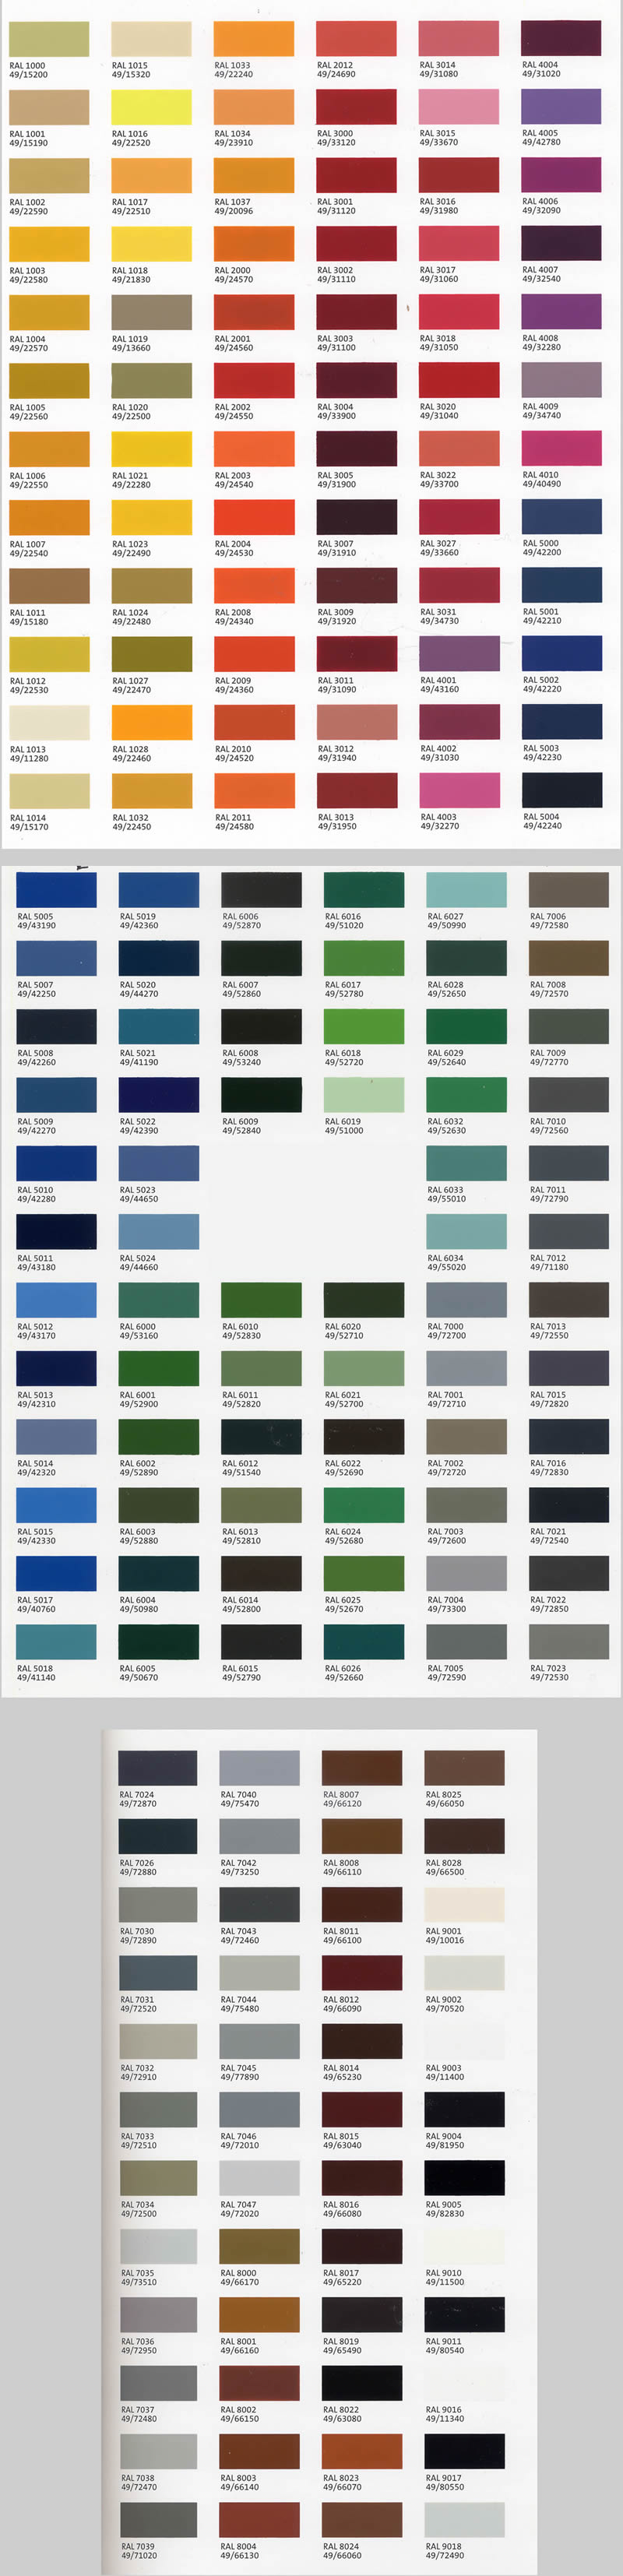 Sherwin williams powder coat colors 2017 grasscloth wallpaper custom planner board and project planner boards nvjuhfo Choice Image